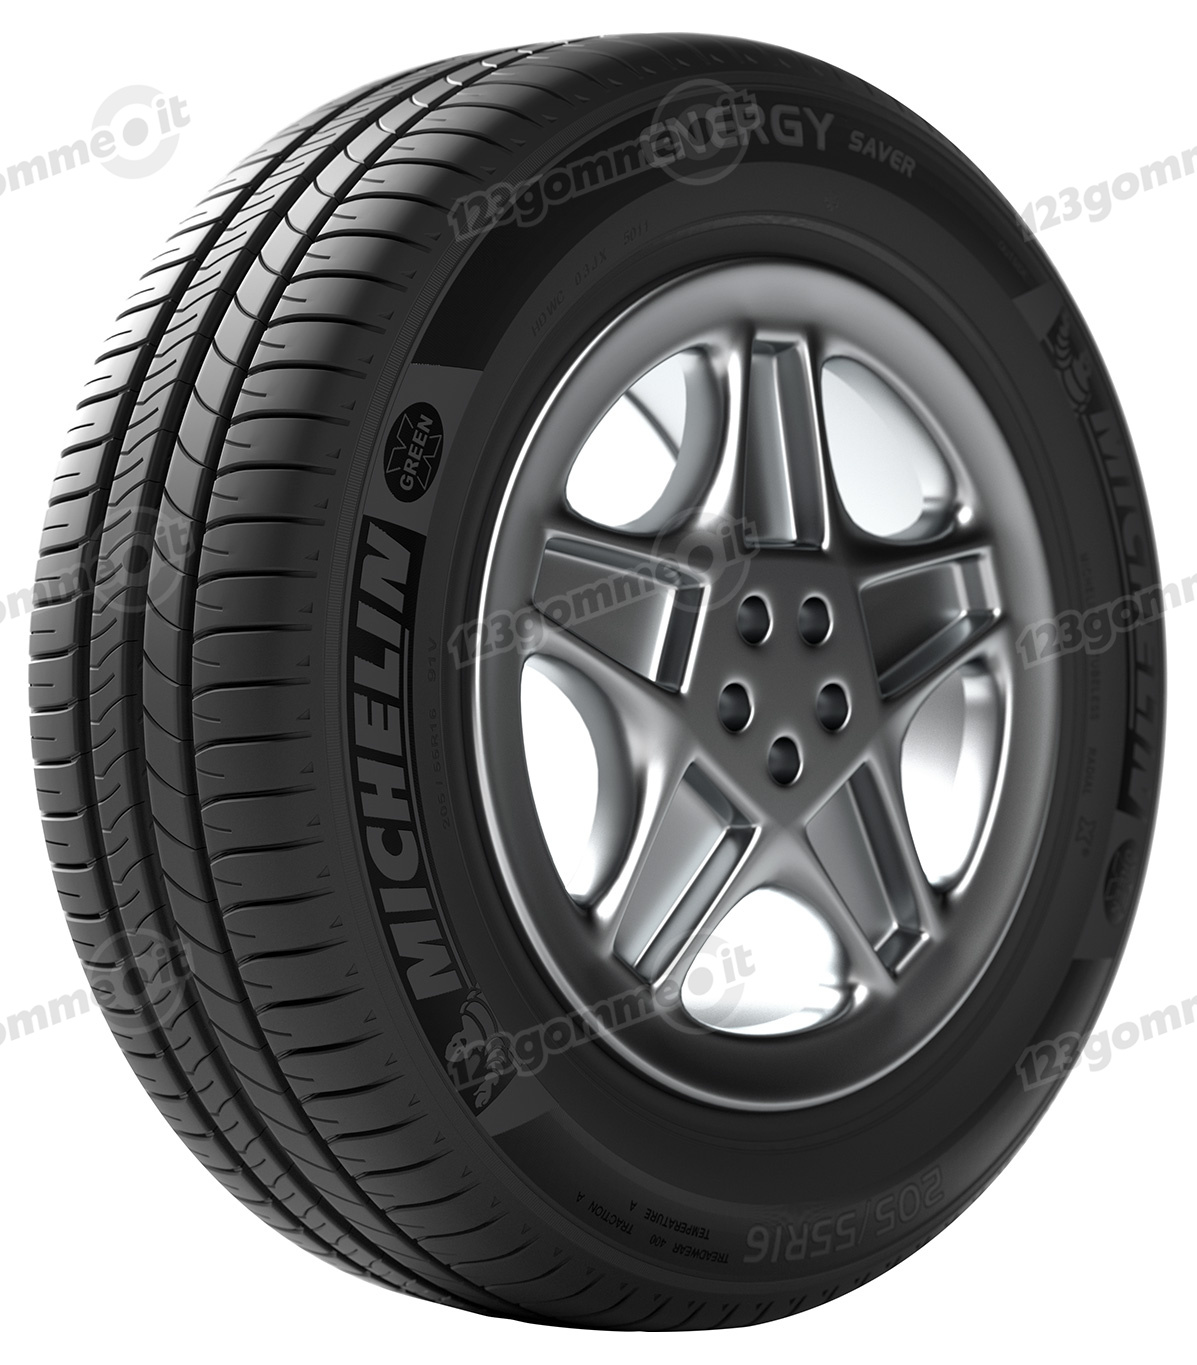 185/55 R16 87H Energy Saver + XL  Energy Saver + XL